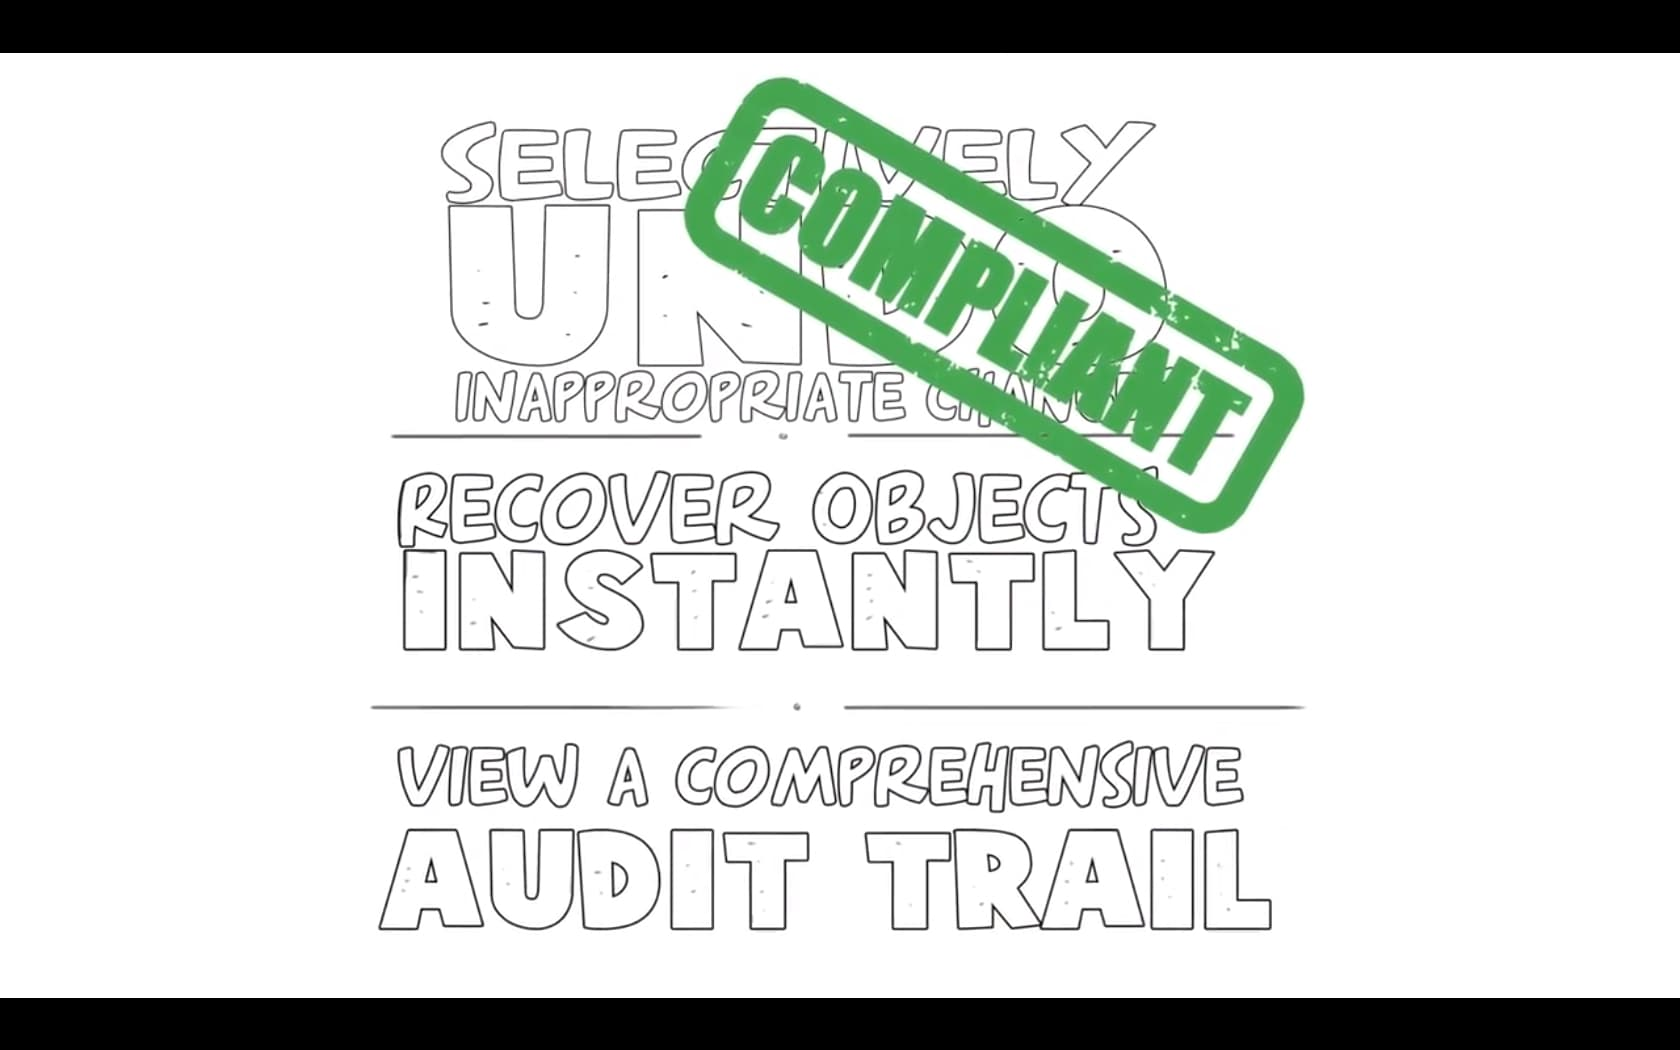 BeyondTrust Auditing and Recovery Overview